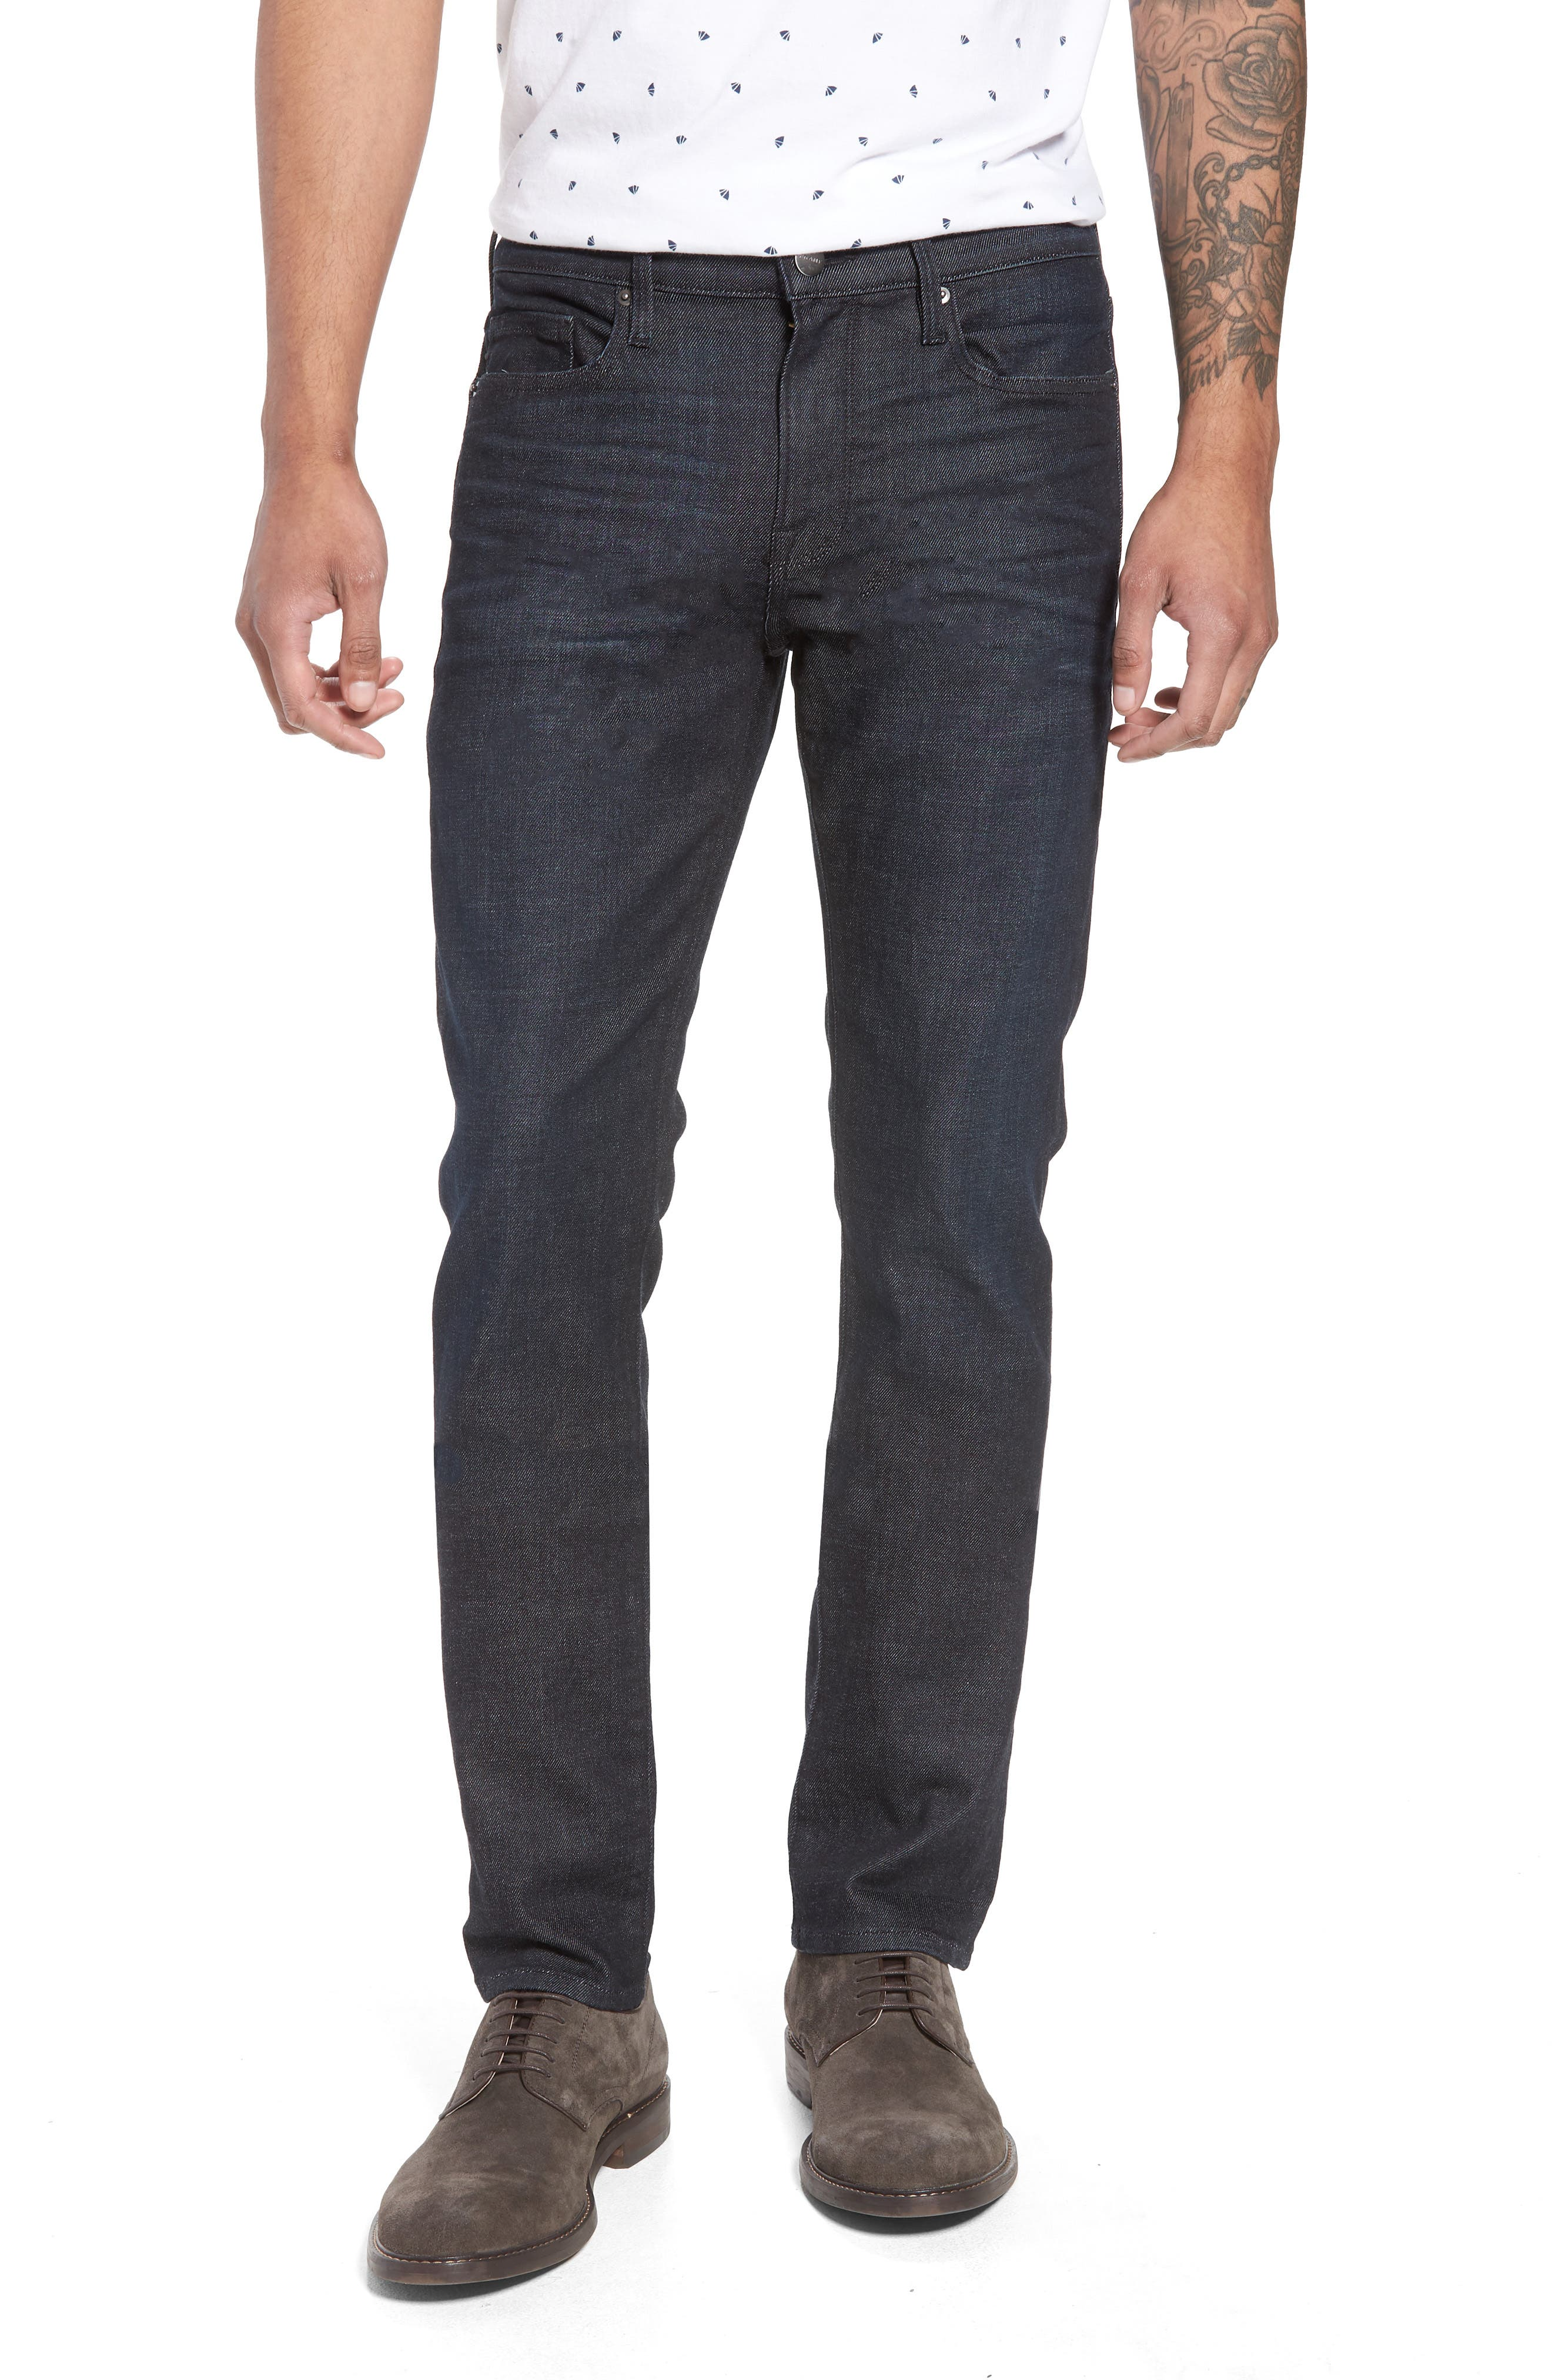 L'Homme Skinny Jeans,                         Main,                         color, MANHATTAN